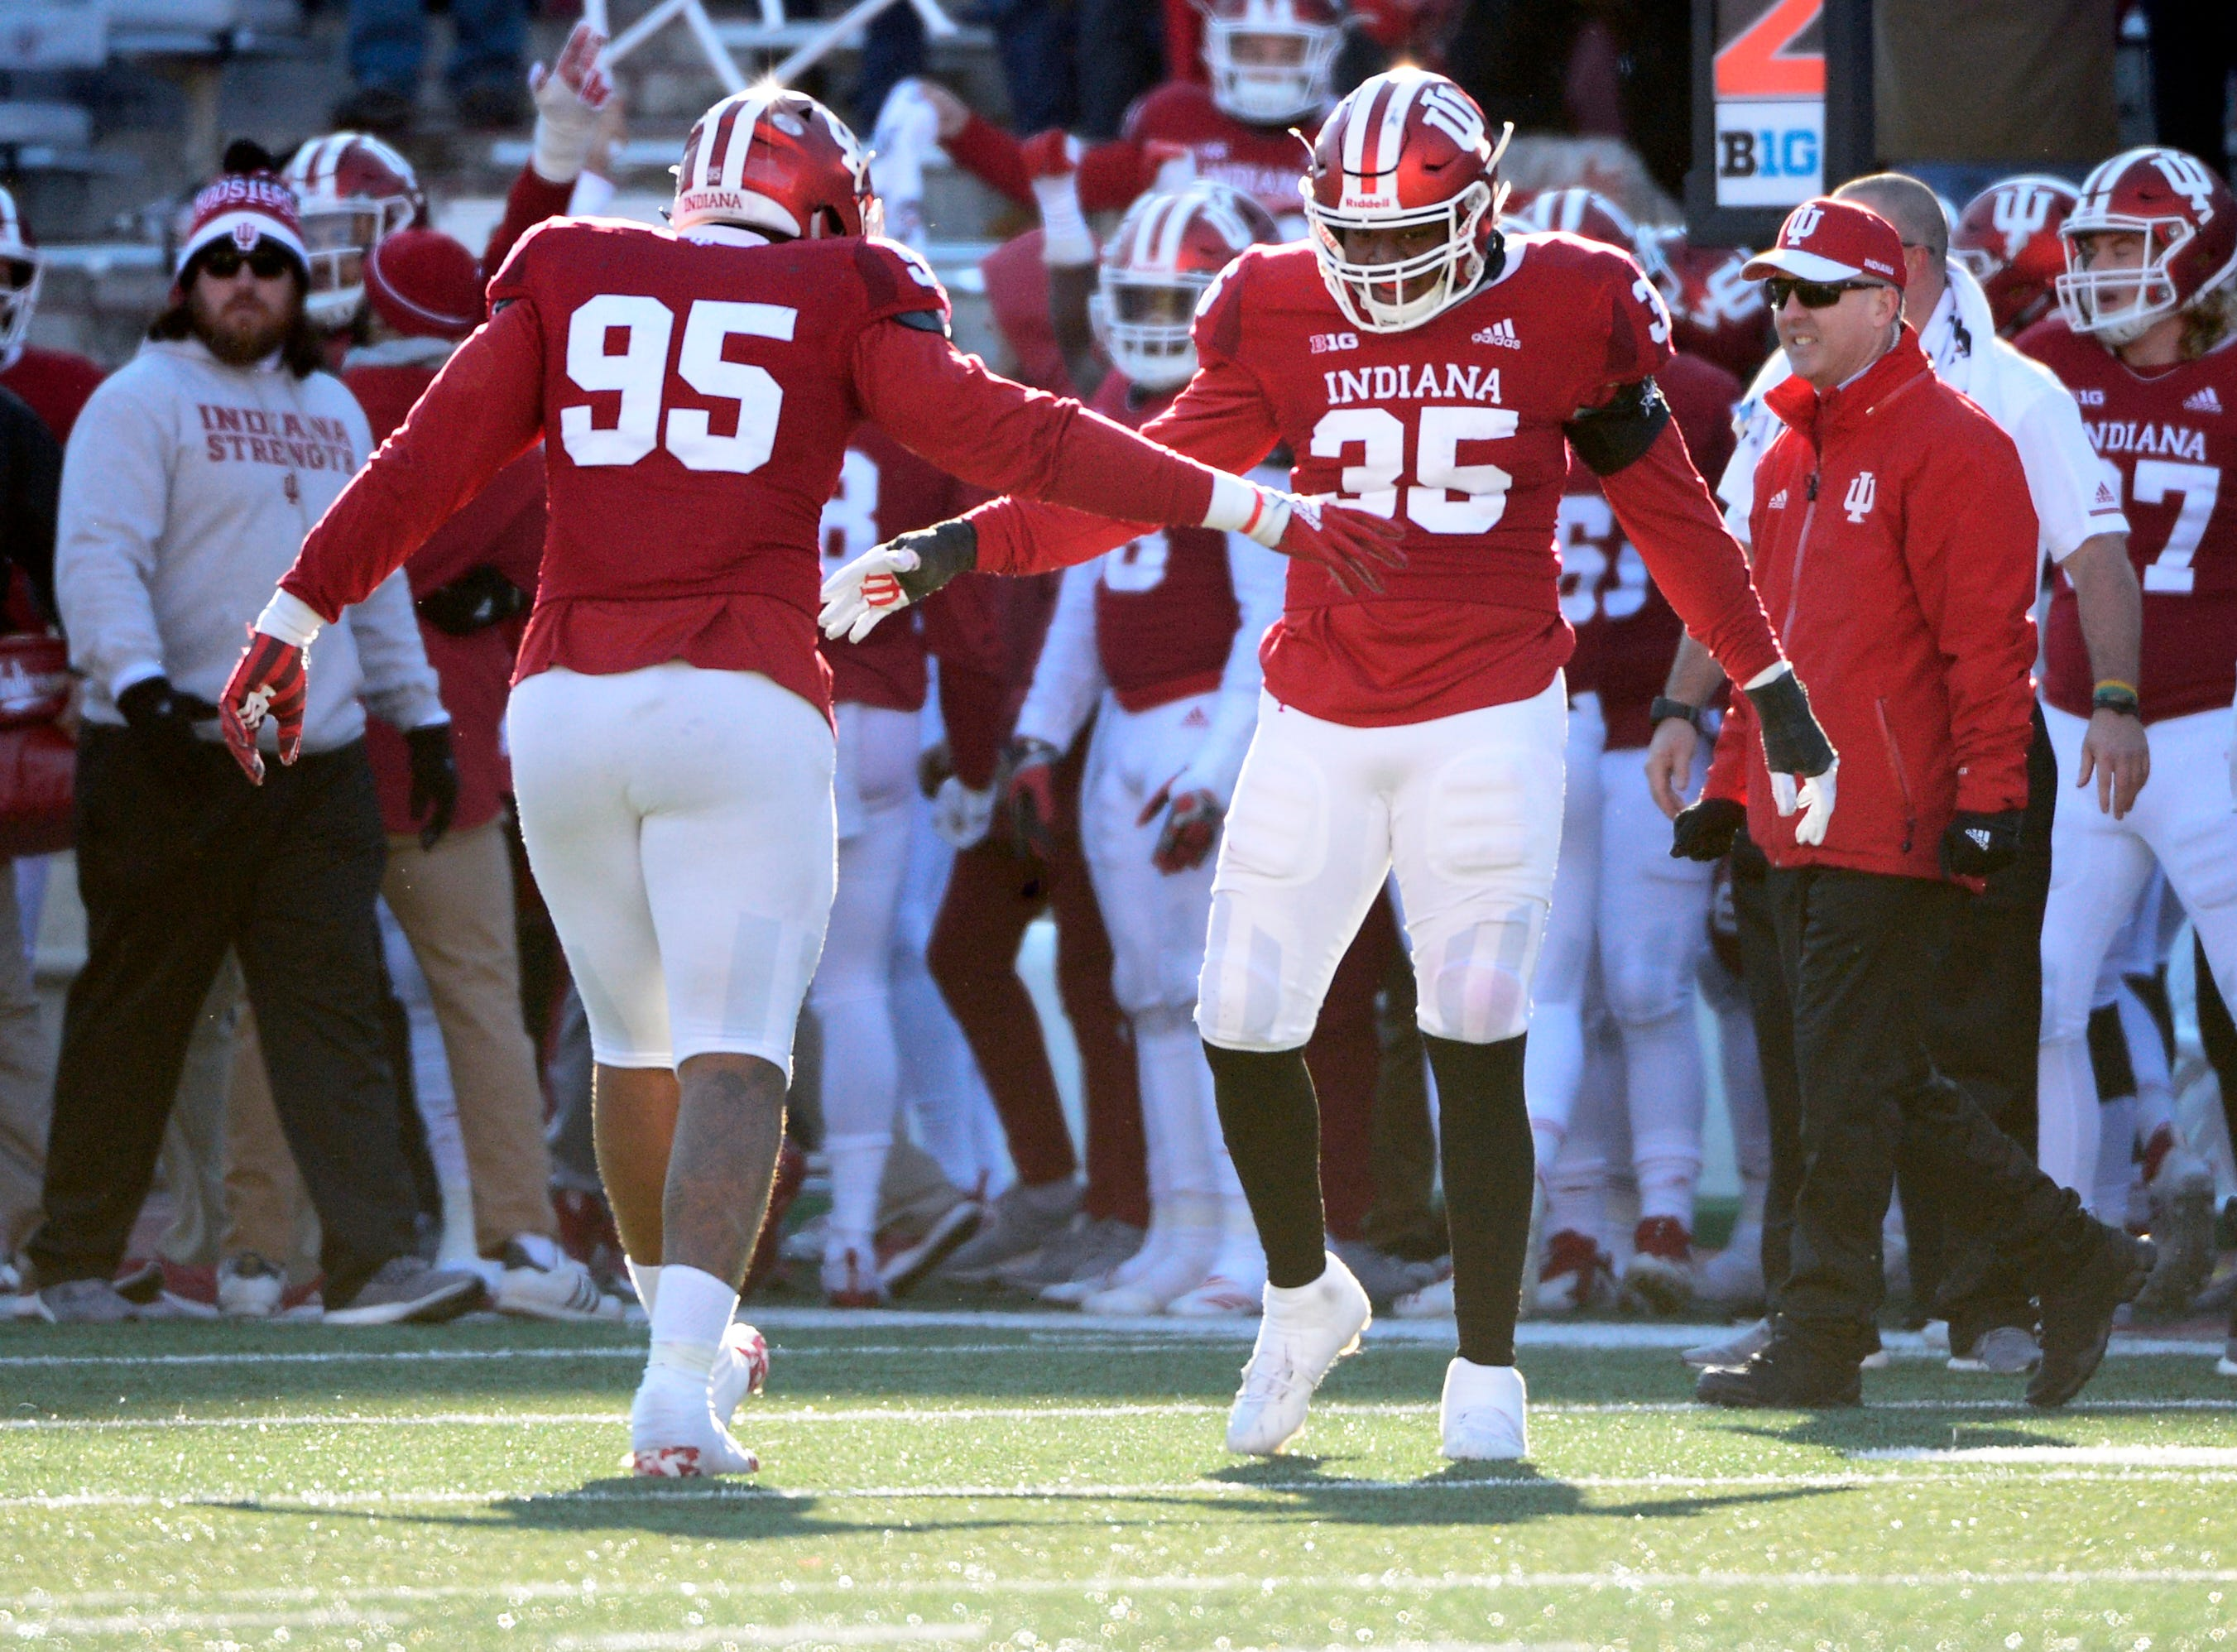 The Indiana Hoosiers celebrate after a game winning takeaway during the game against Maryland at Memorial Stadium in Bloomington, Ind., on Satuday, Nov. 10, 2018.